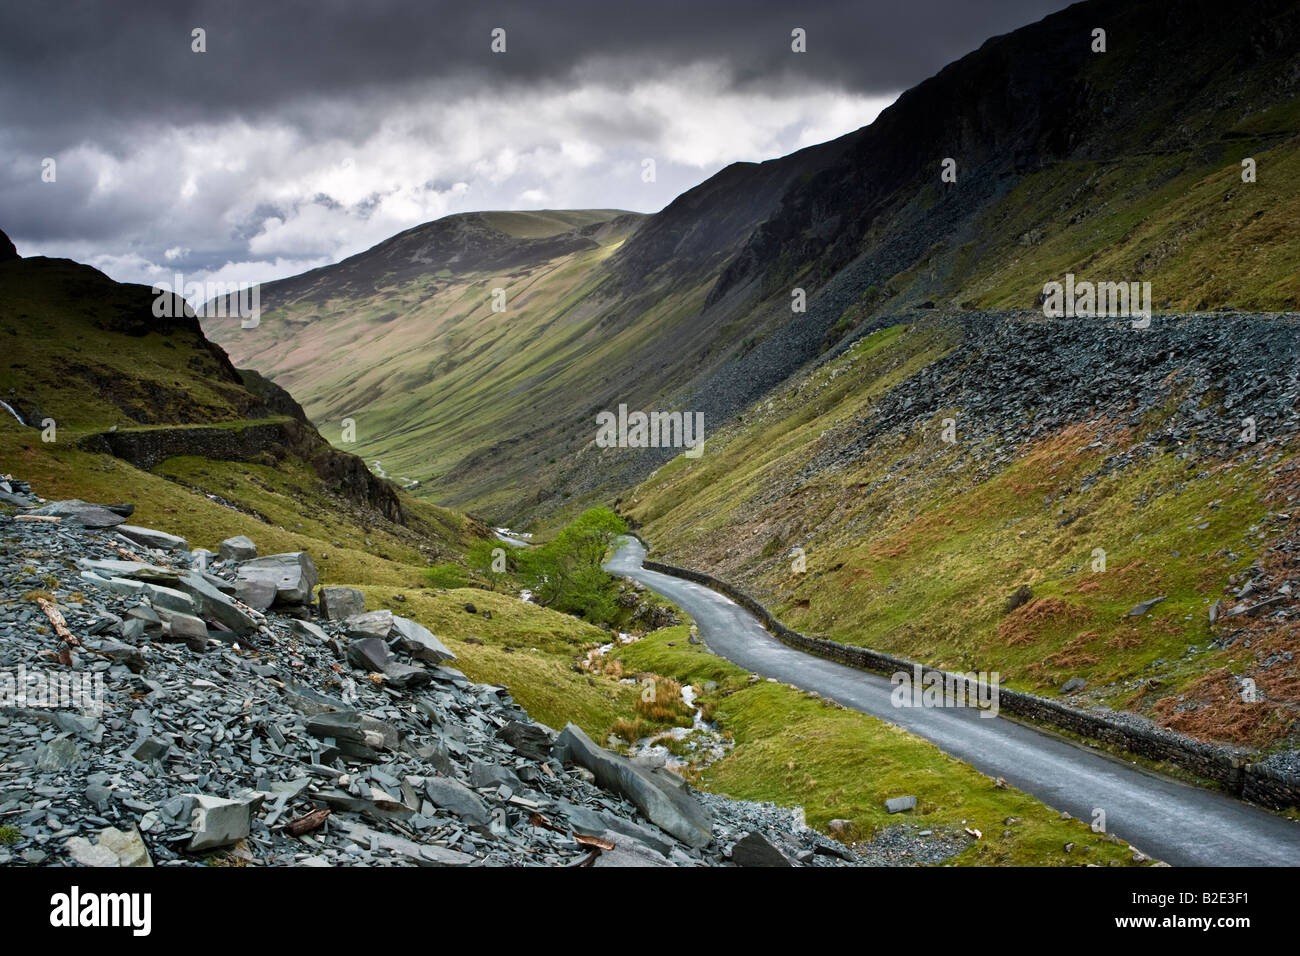 The B5289 road winding through Honister Pass in Borrowdale in the ...